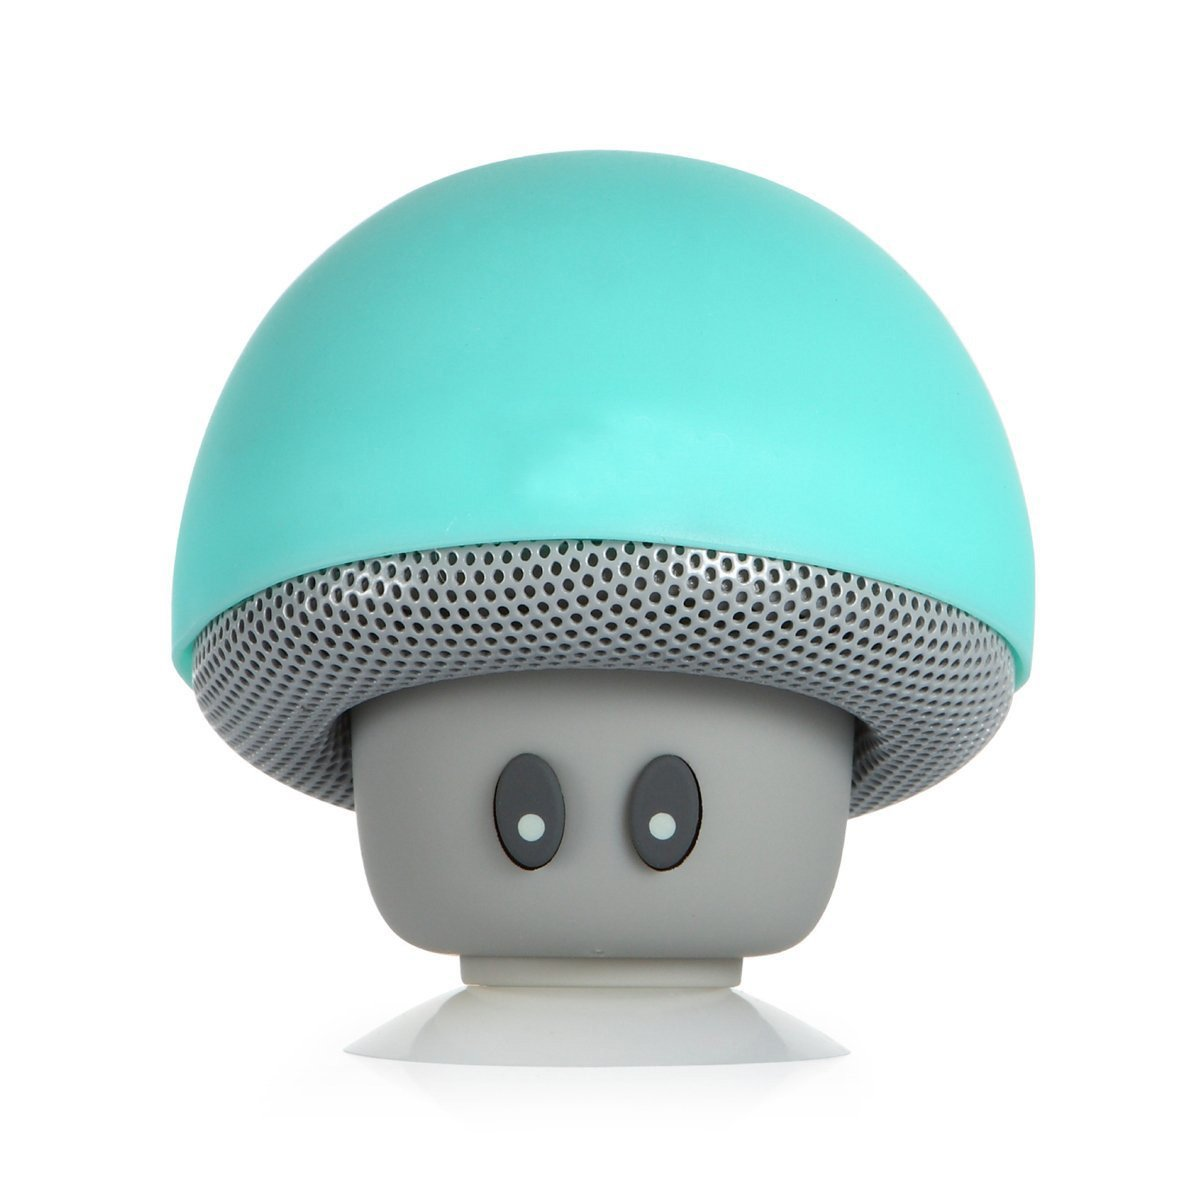 WONFAST® Portable Mini Cute Mushroom Style Bluetooth Wireless Stereo Speakers Hands Free Speakerphone with Built-in Mic for iPhone/iPad/Samsung/HTC/LG/SONY Android cellphone (Teal)